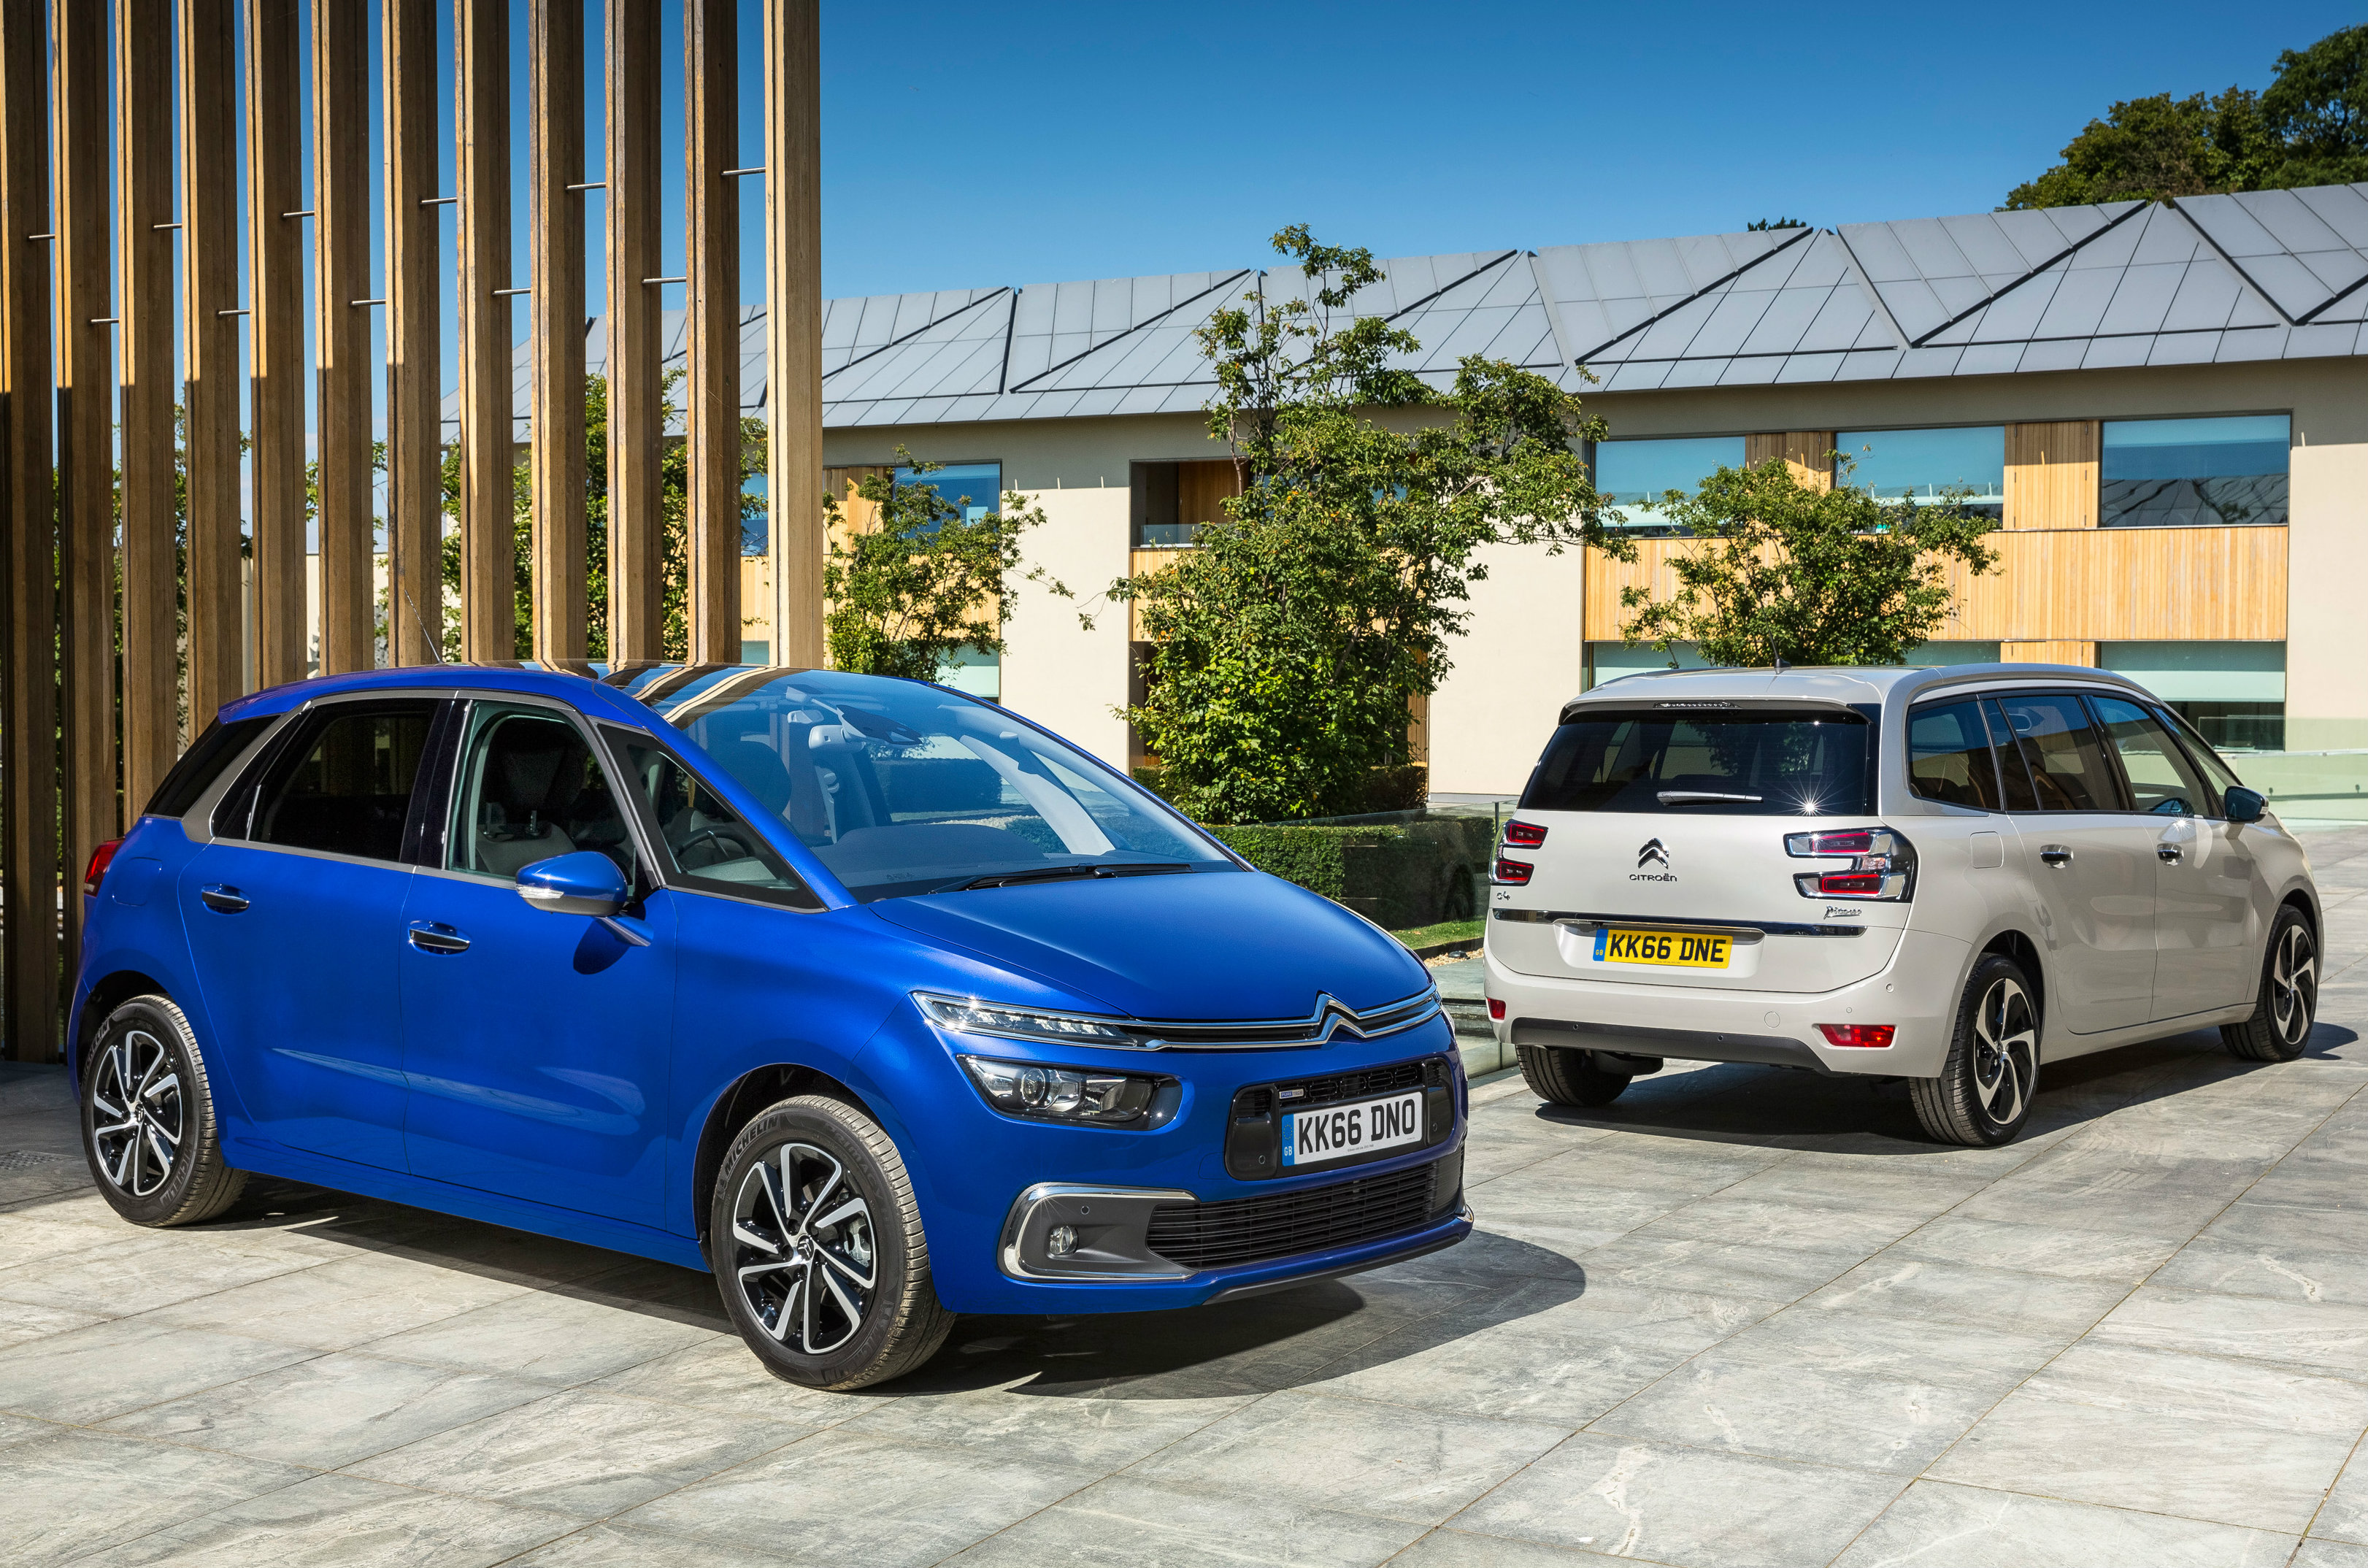 2016 citroen c4 picasso grand c4 picasso uk pricing announced autoevolution. Black Bedroom Furniture Sets. Home Design Ideas